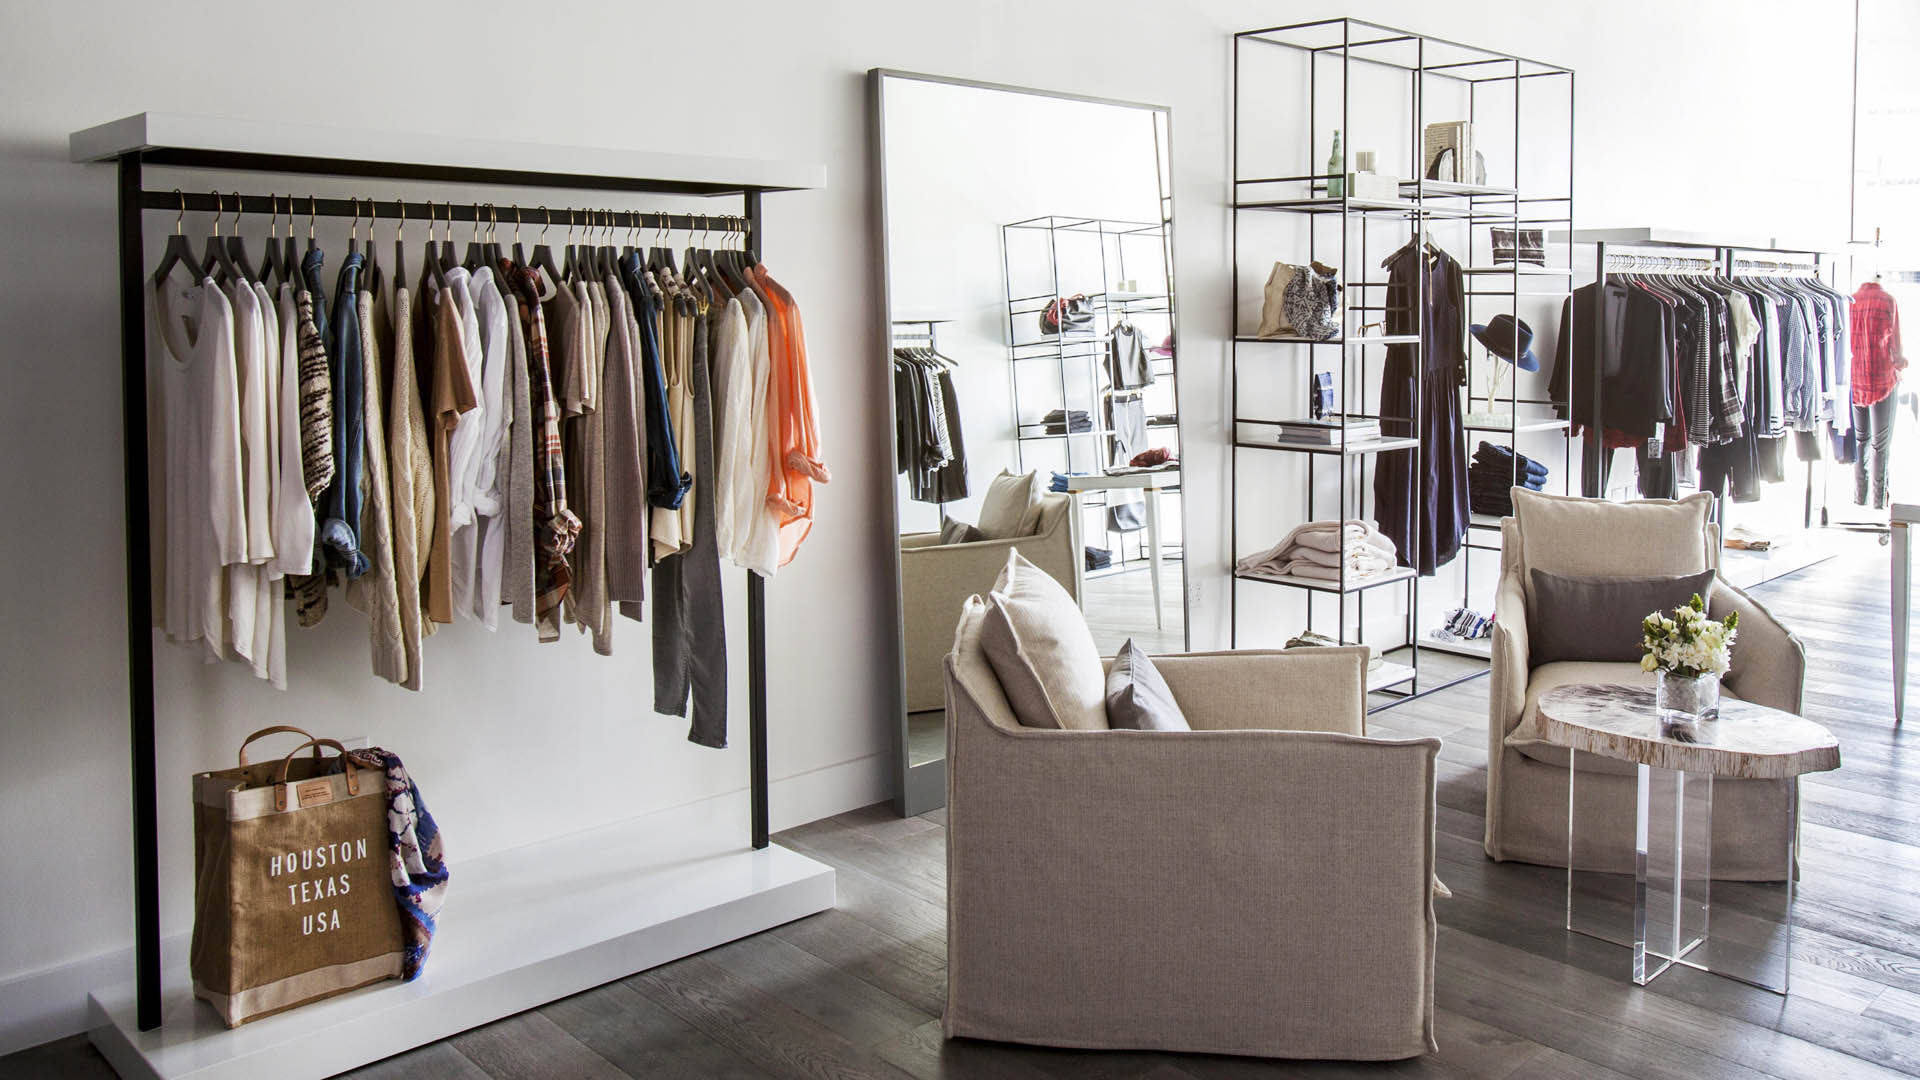 Commercial Retail Interior Design High End Women's Apparel Brooke Feather Houston Hanging Racks